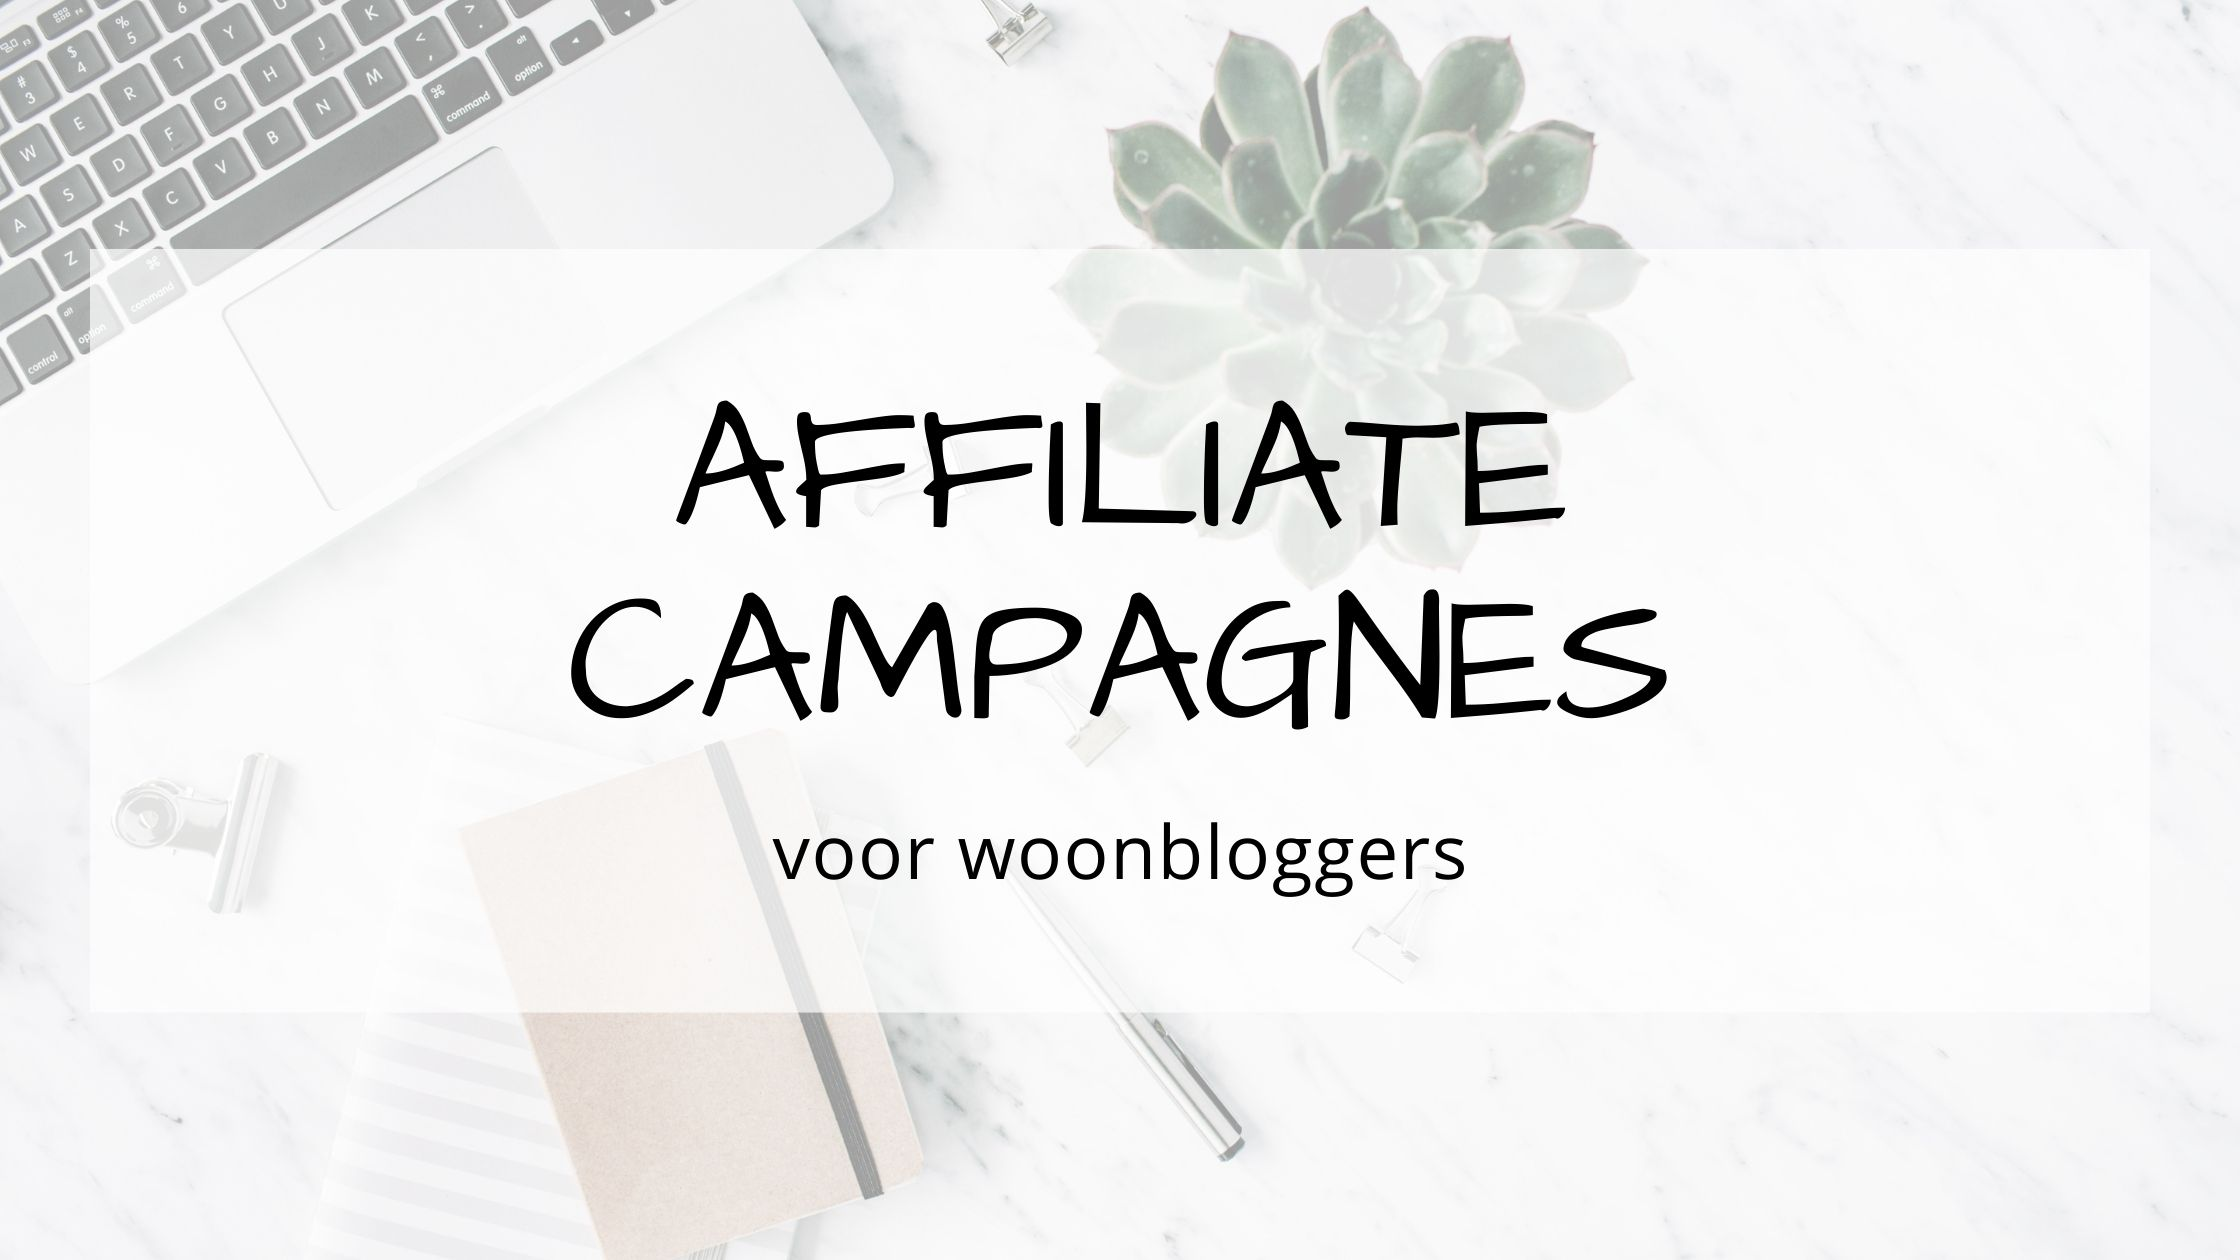 Affiliate campagnes voor woonbloggers